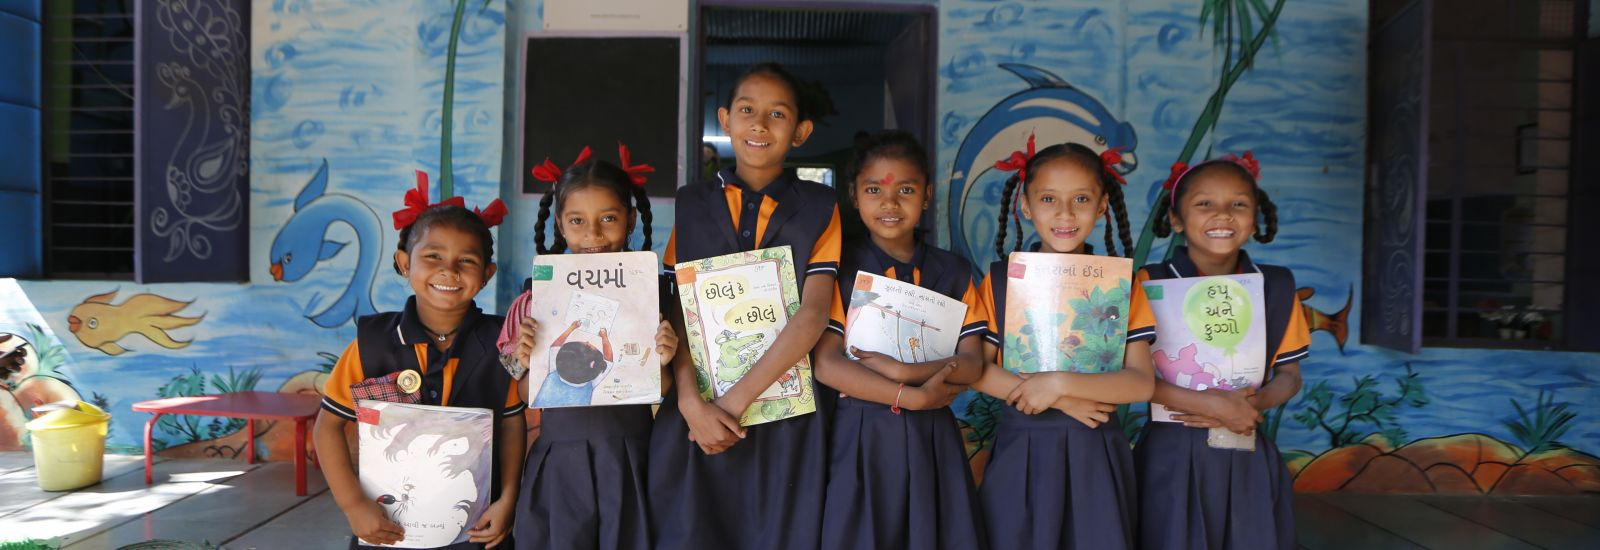 A group of schoolgirls clutching their books and smiling